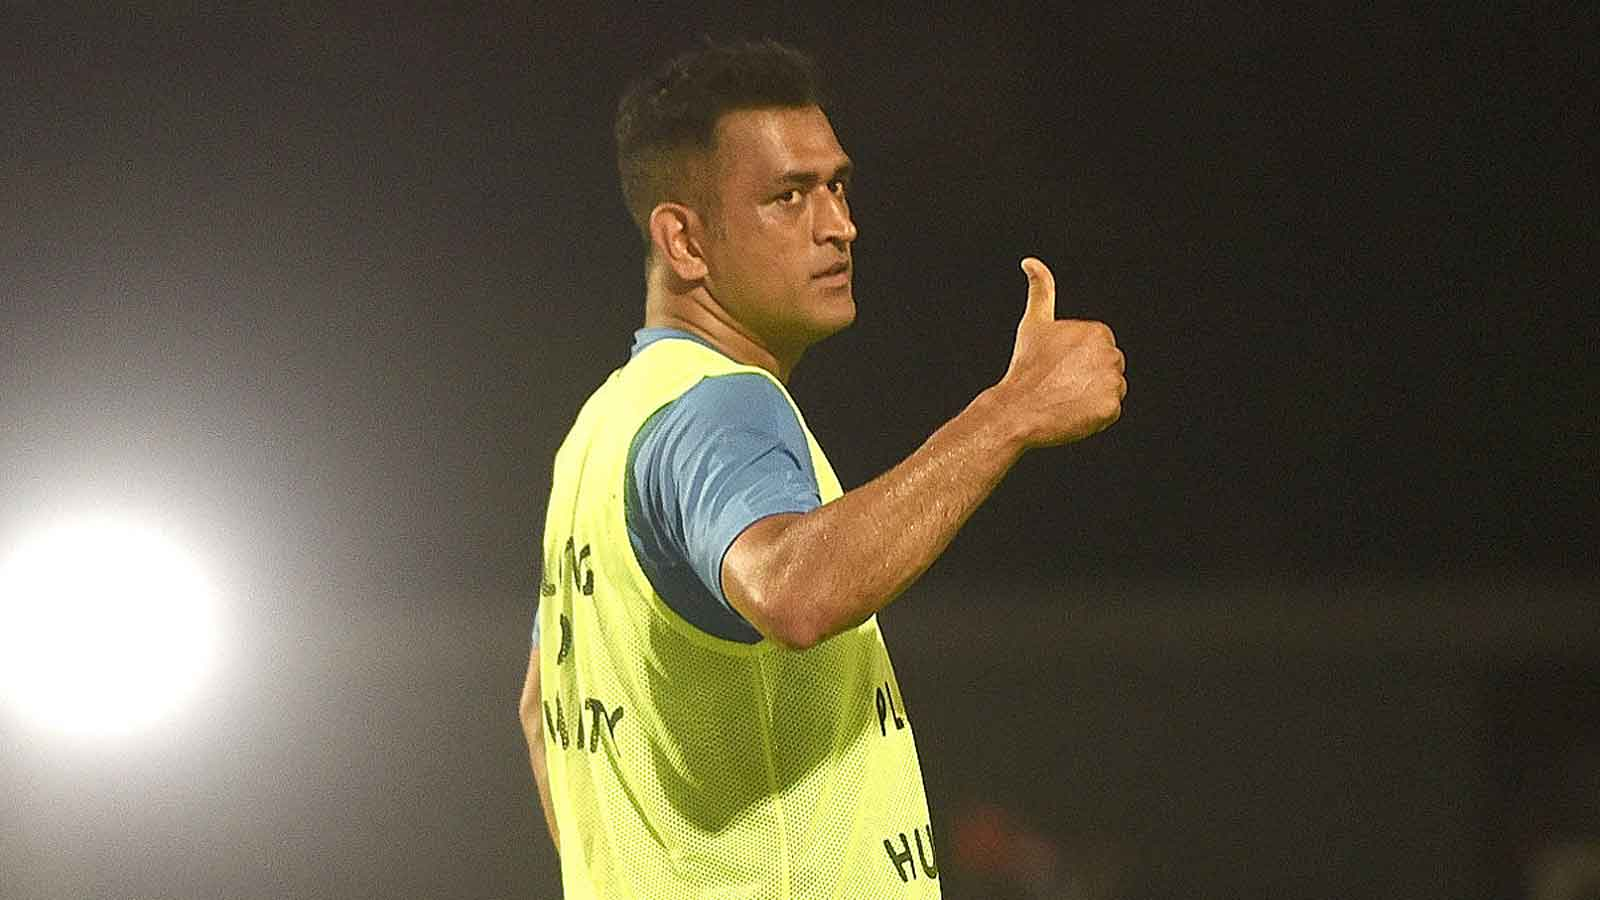 expect-ms-dhoni-to-be-part-of-csk-in-2021-and-2022-ipls-ceo-kasi-viswanathan